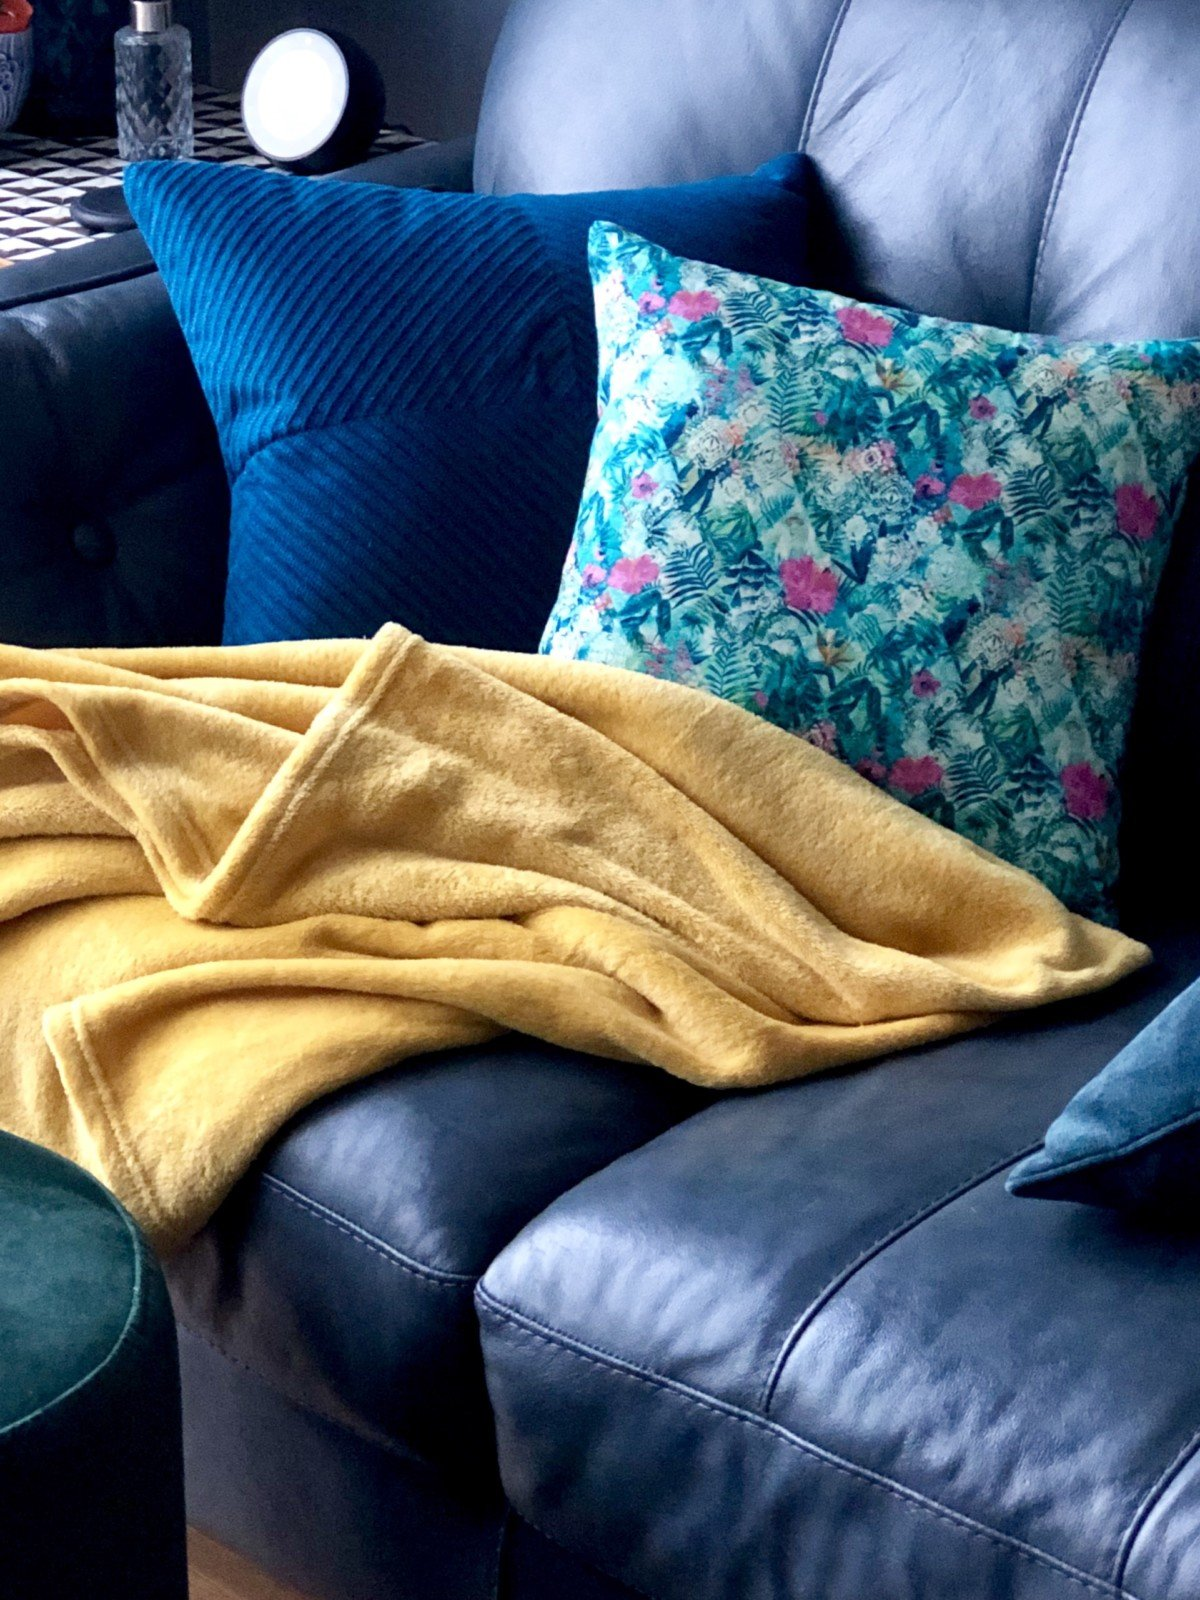 Homemade sewed tropical cushion on Sofa. After saucing my fabric at the log cabin in Billericay I had two pieces of fabric ready to make some classy cushions for the home.